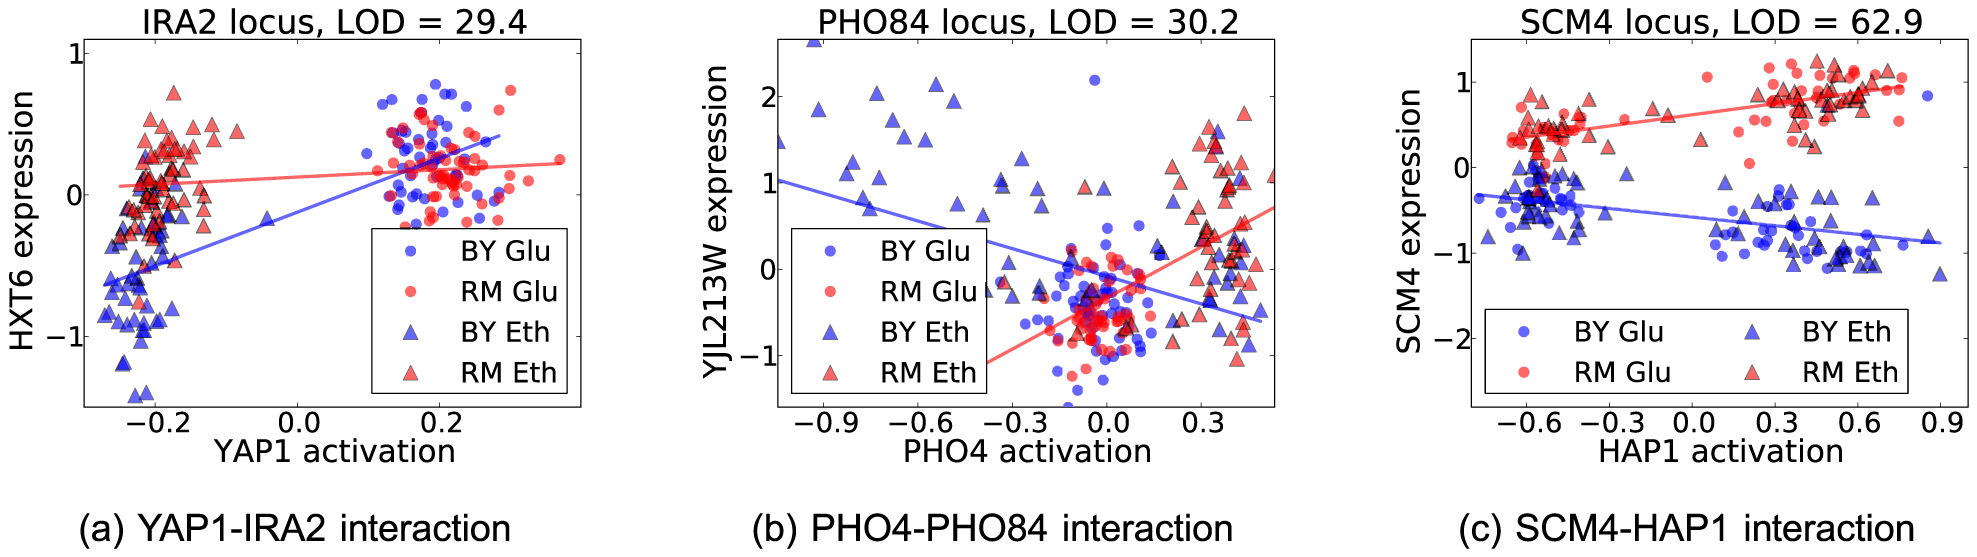 Three broad classes of interaction effects between locus genotype and transcription factor activation affecting gene expression (for details see text).